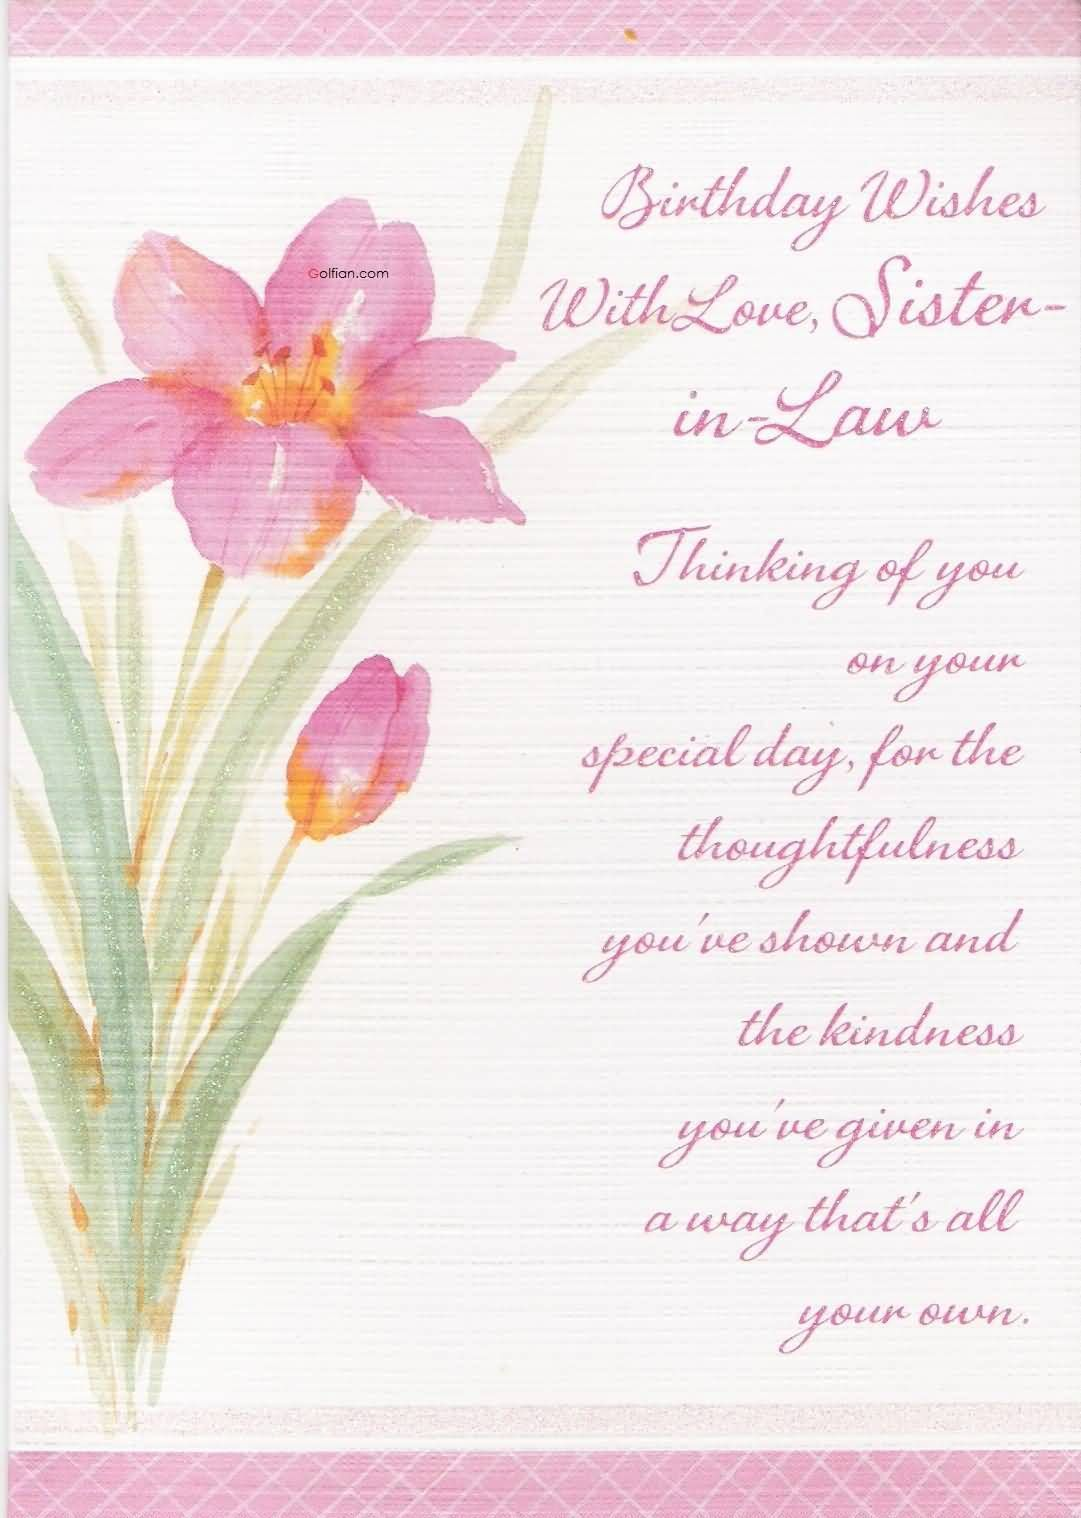 Birthday wishes for sister in law poem pinterest paintings nice images icon is an images and wallpapers website dedicated to providing our users the most attractive funny and beautiful hd images m4hsunfo